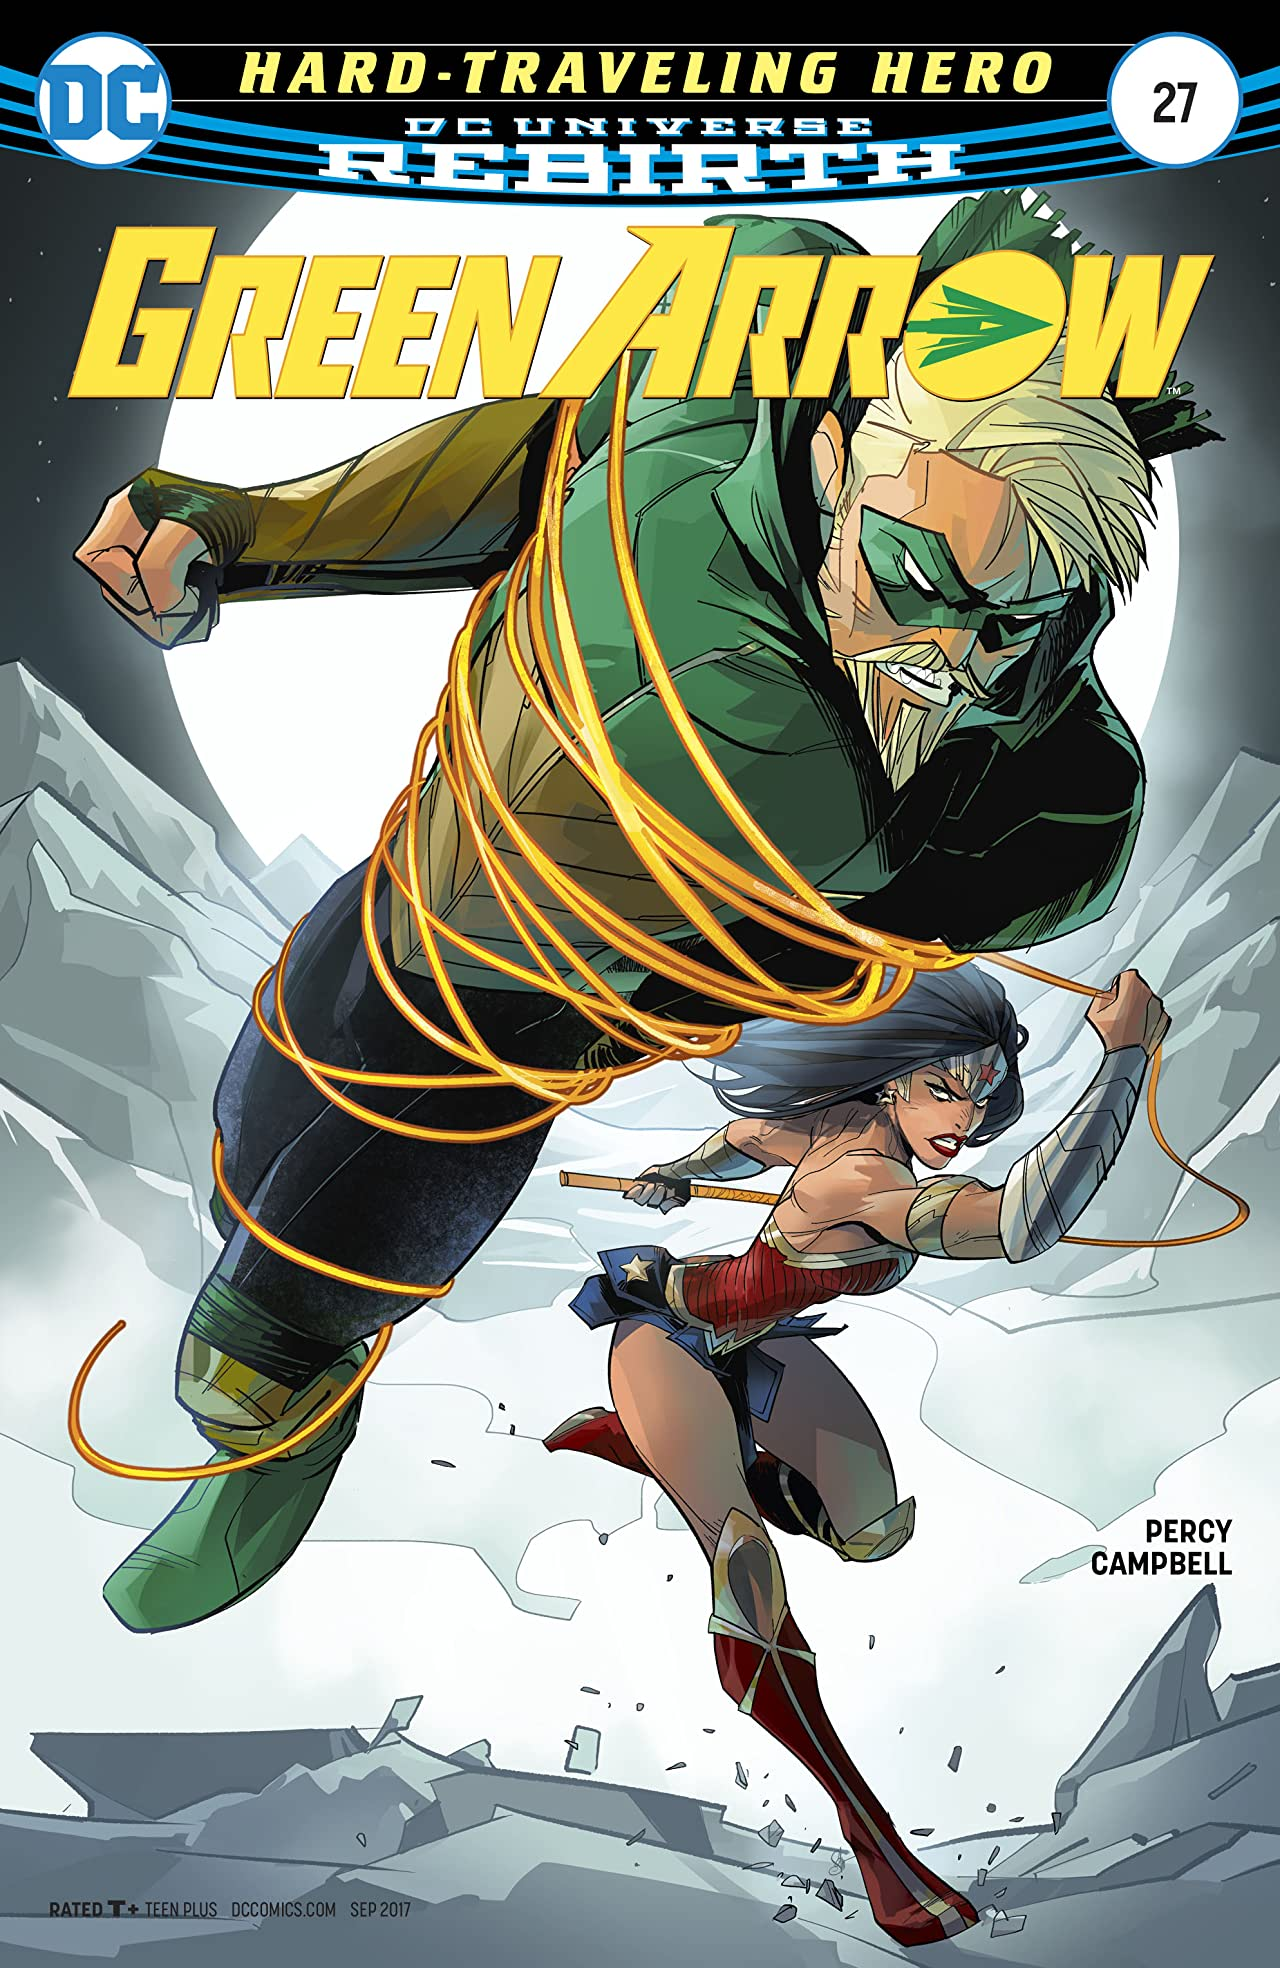 Green Arrow (2016-) #27